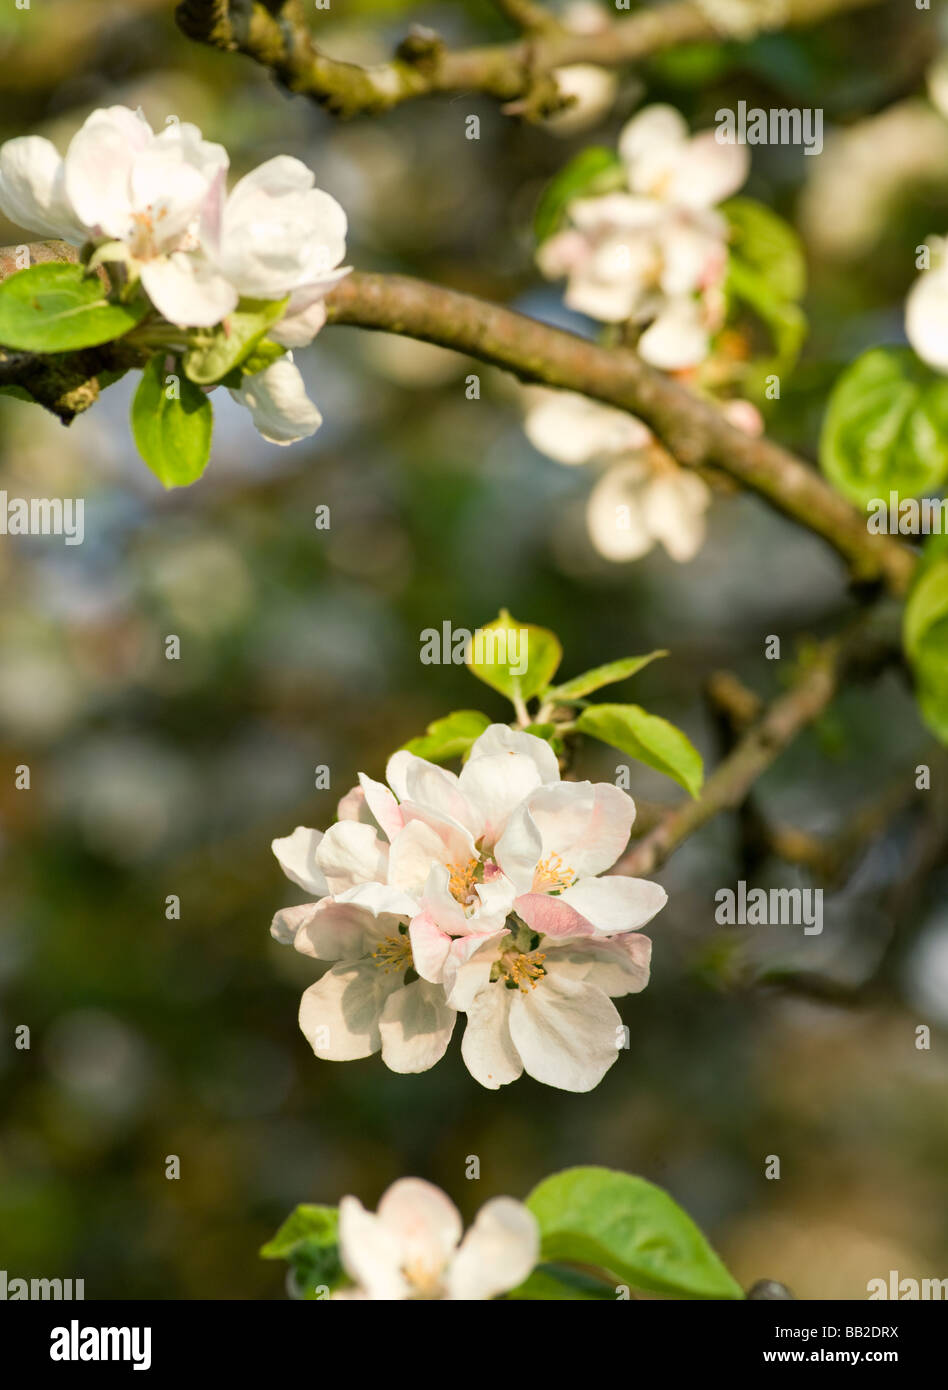 APPLE BLOSSOM ON OLD APPLE TREE IN COTTAGE GARDEN UK - Stock Image